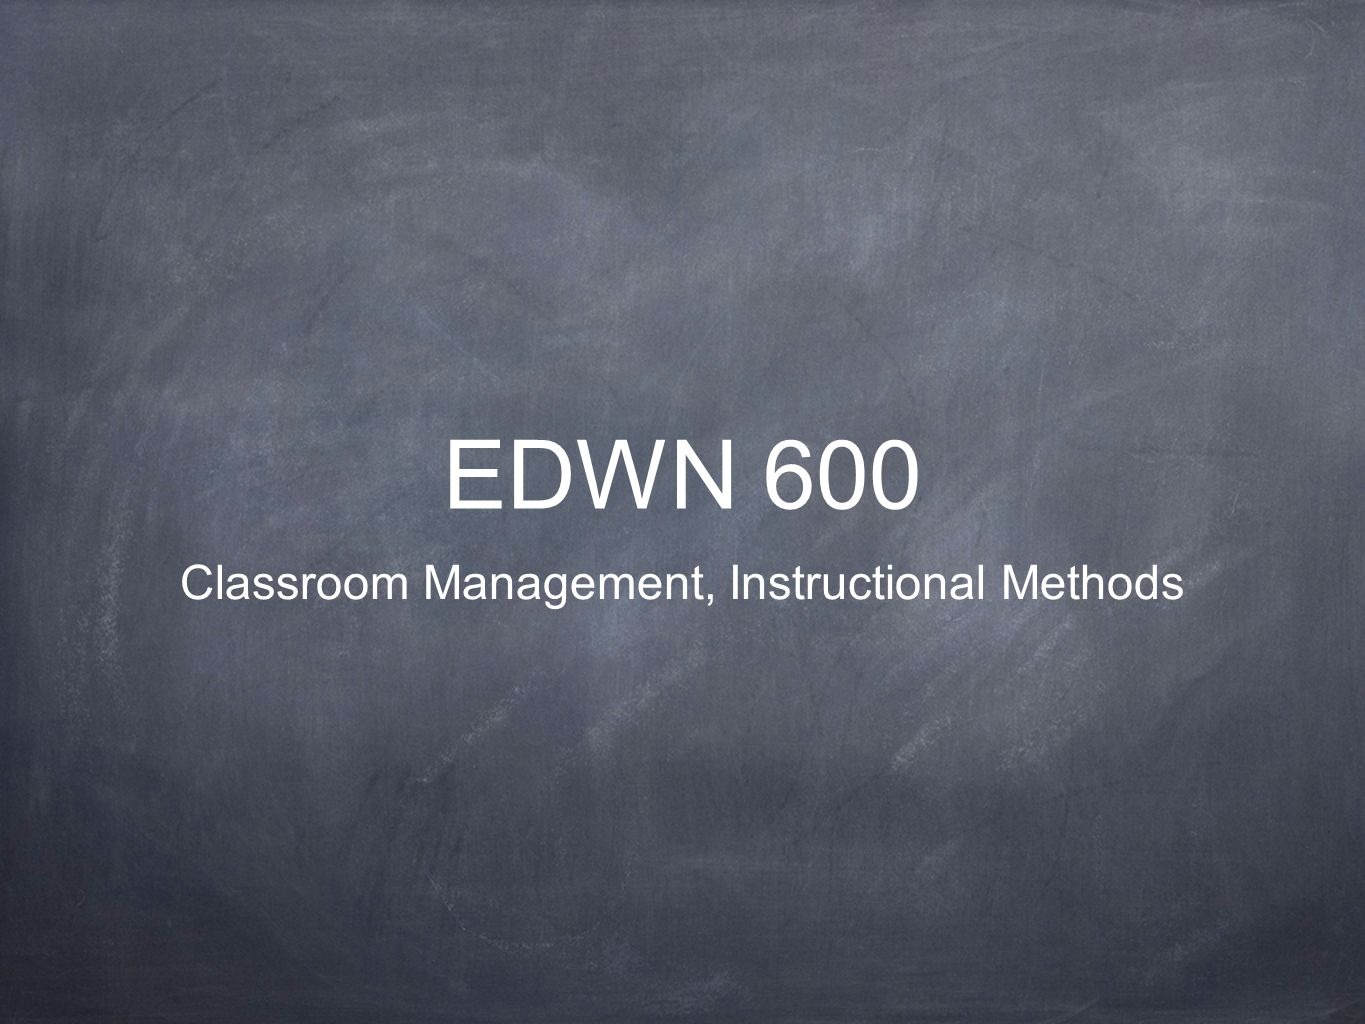 EDWN 600 Classroom Management, Instructional Methods